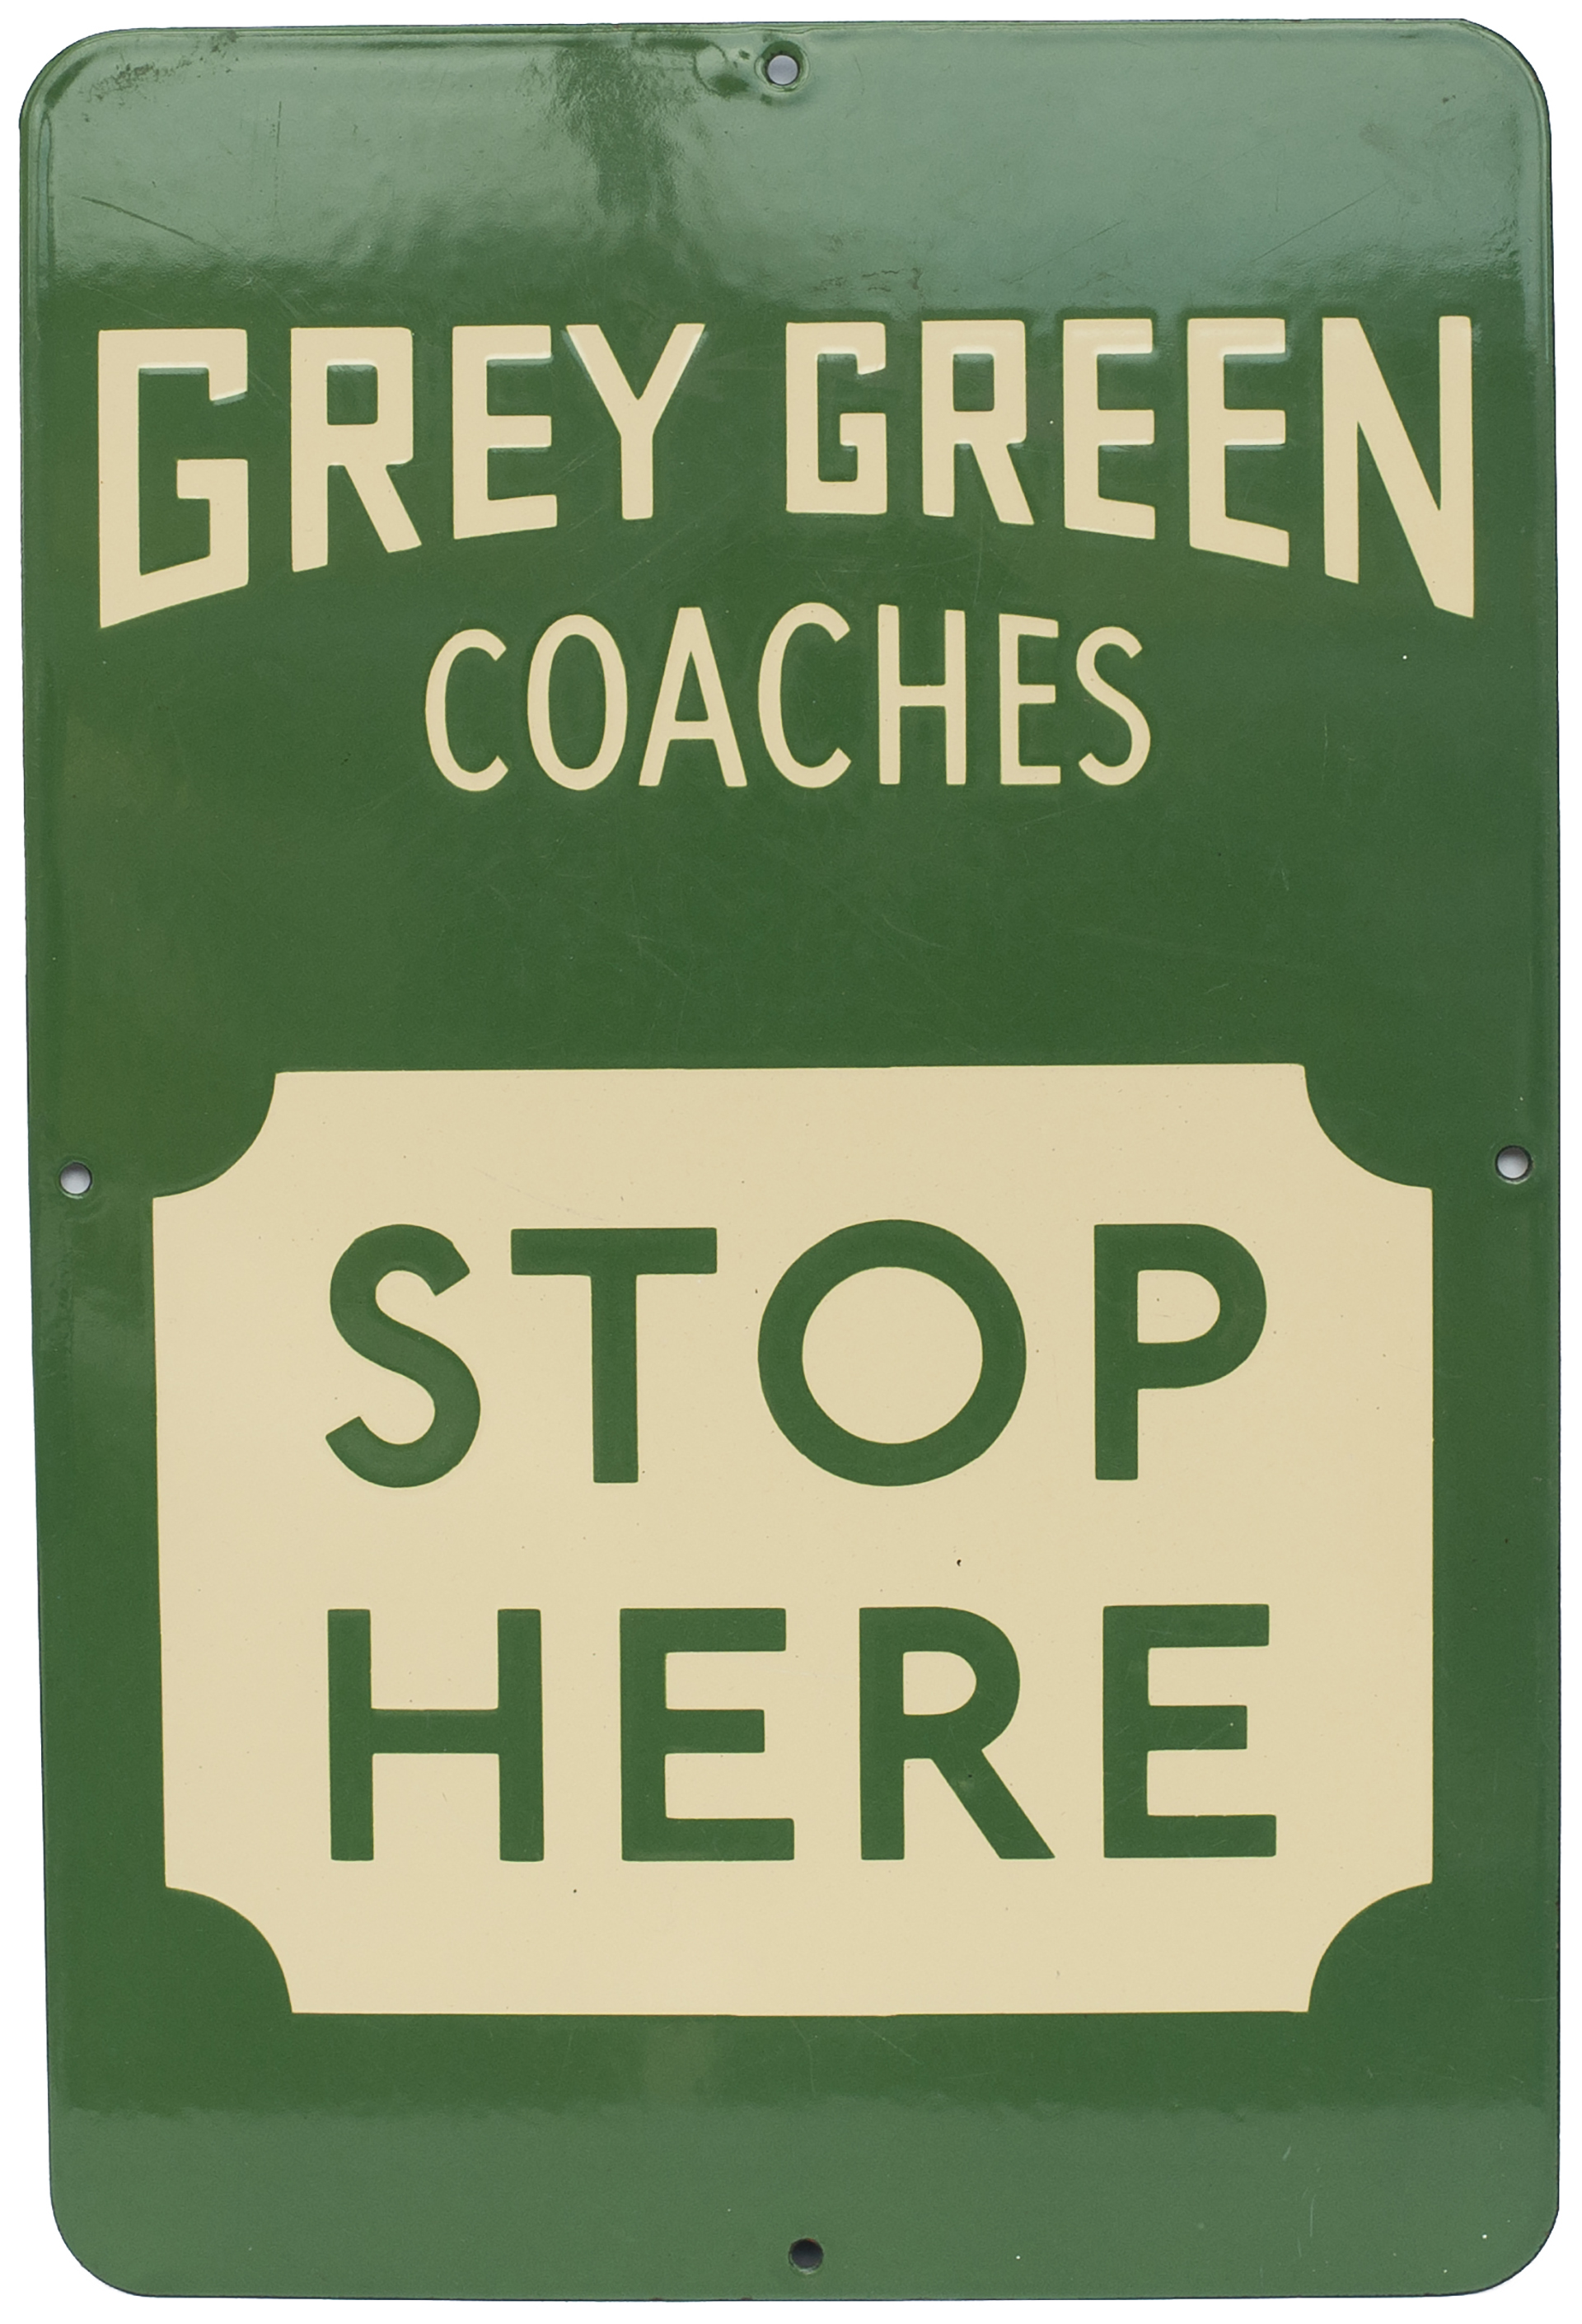 Bus Motoring Enamel Sign GREY GREEN COACHES STOP